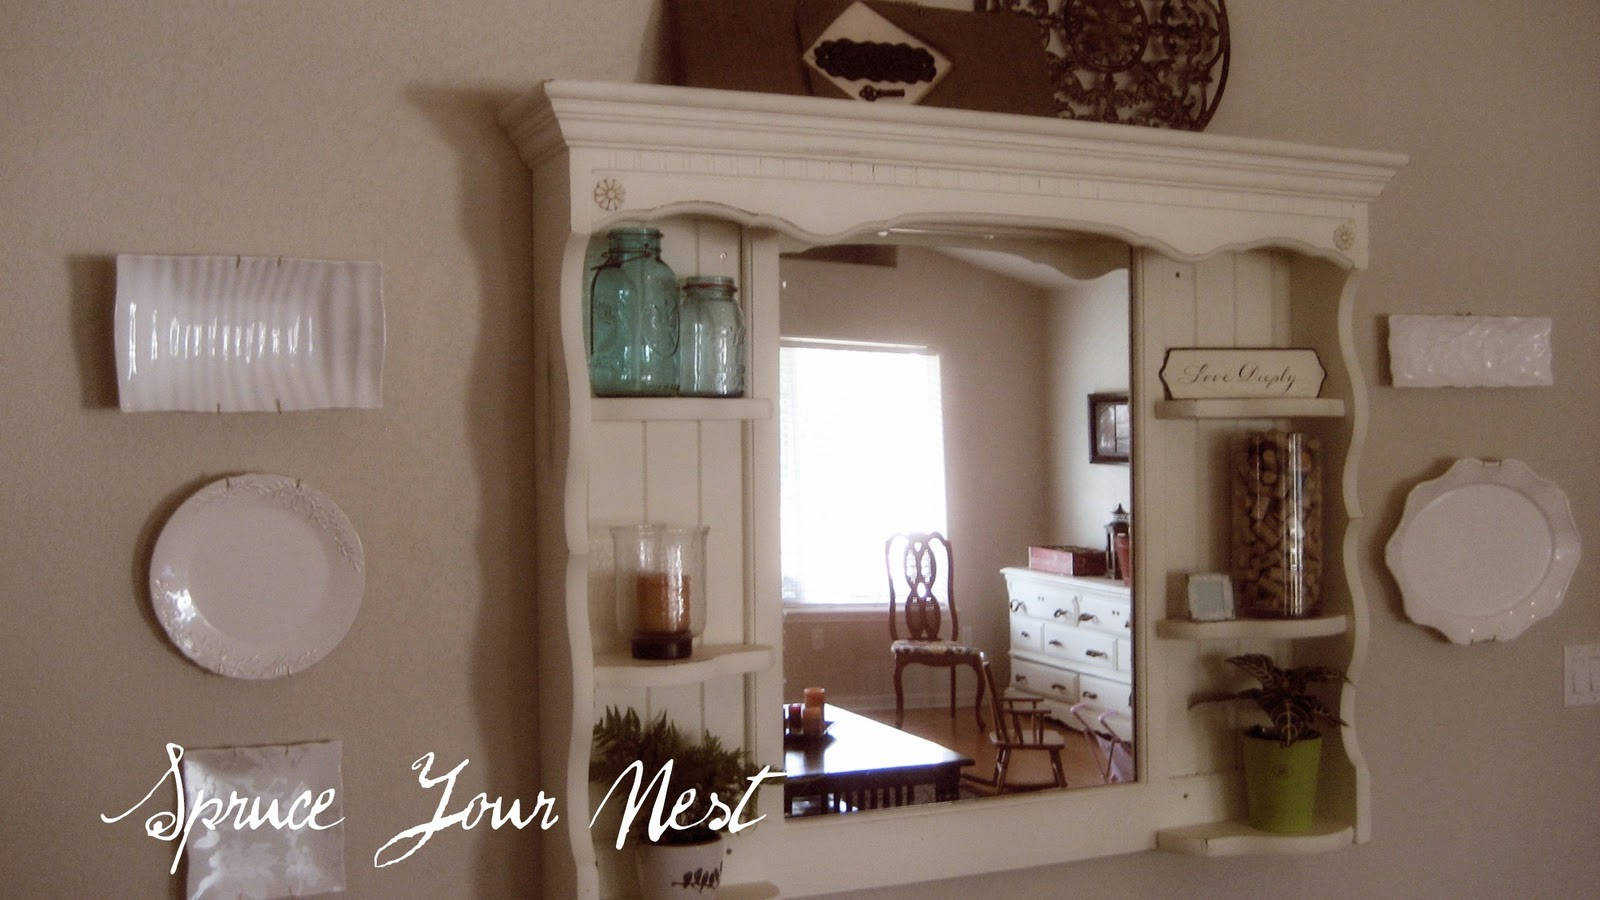 Spruce your nest projects for Best place for wall decor